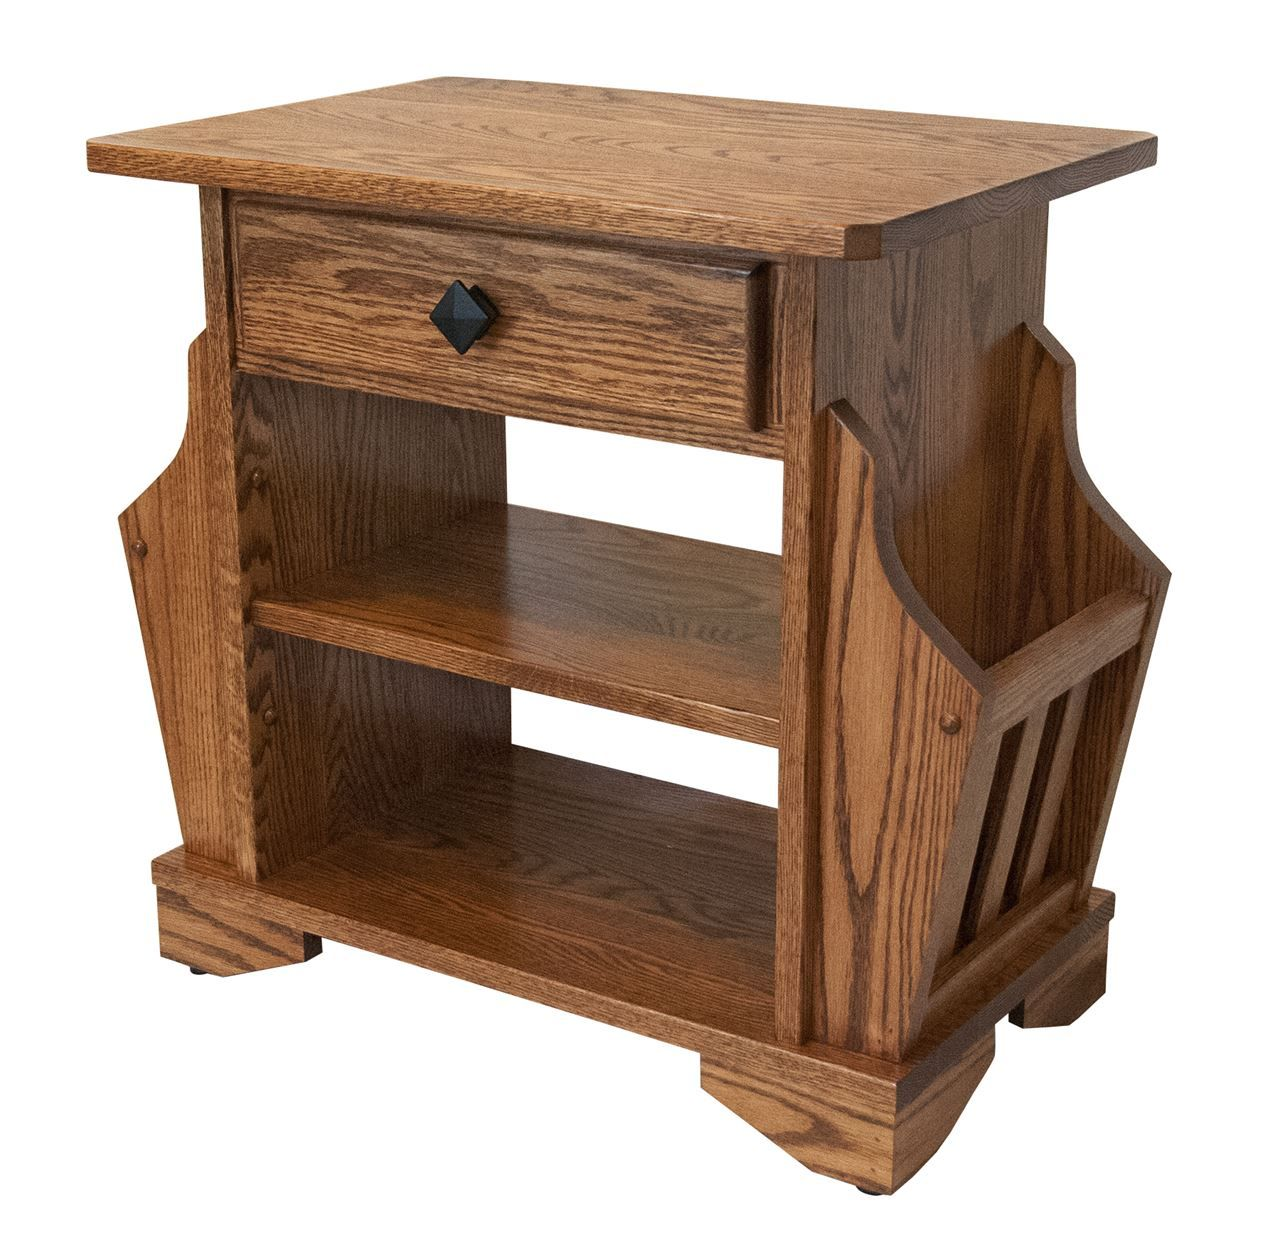 Solid Oak Amish Built Magazine Rack End Table Mission Style W Drawer End Tables Cheap Office Chairs Rocking Chair Nursery